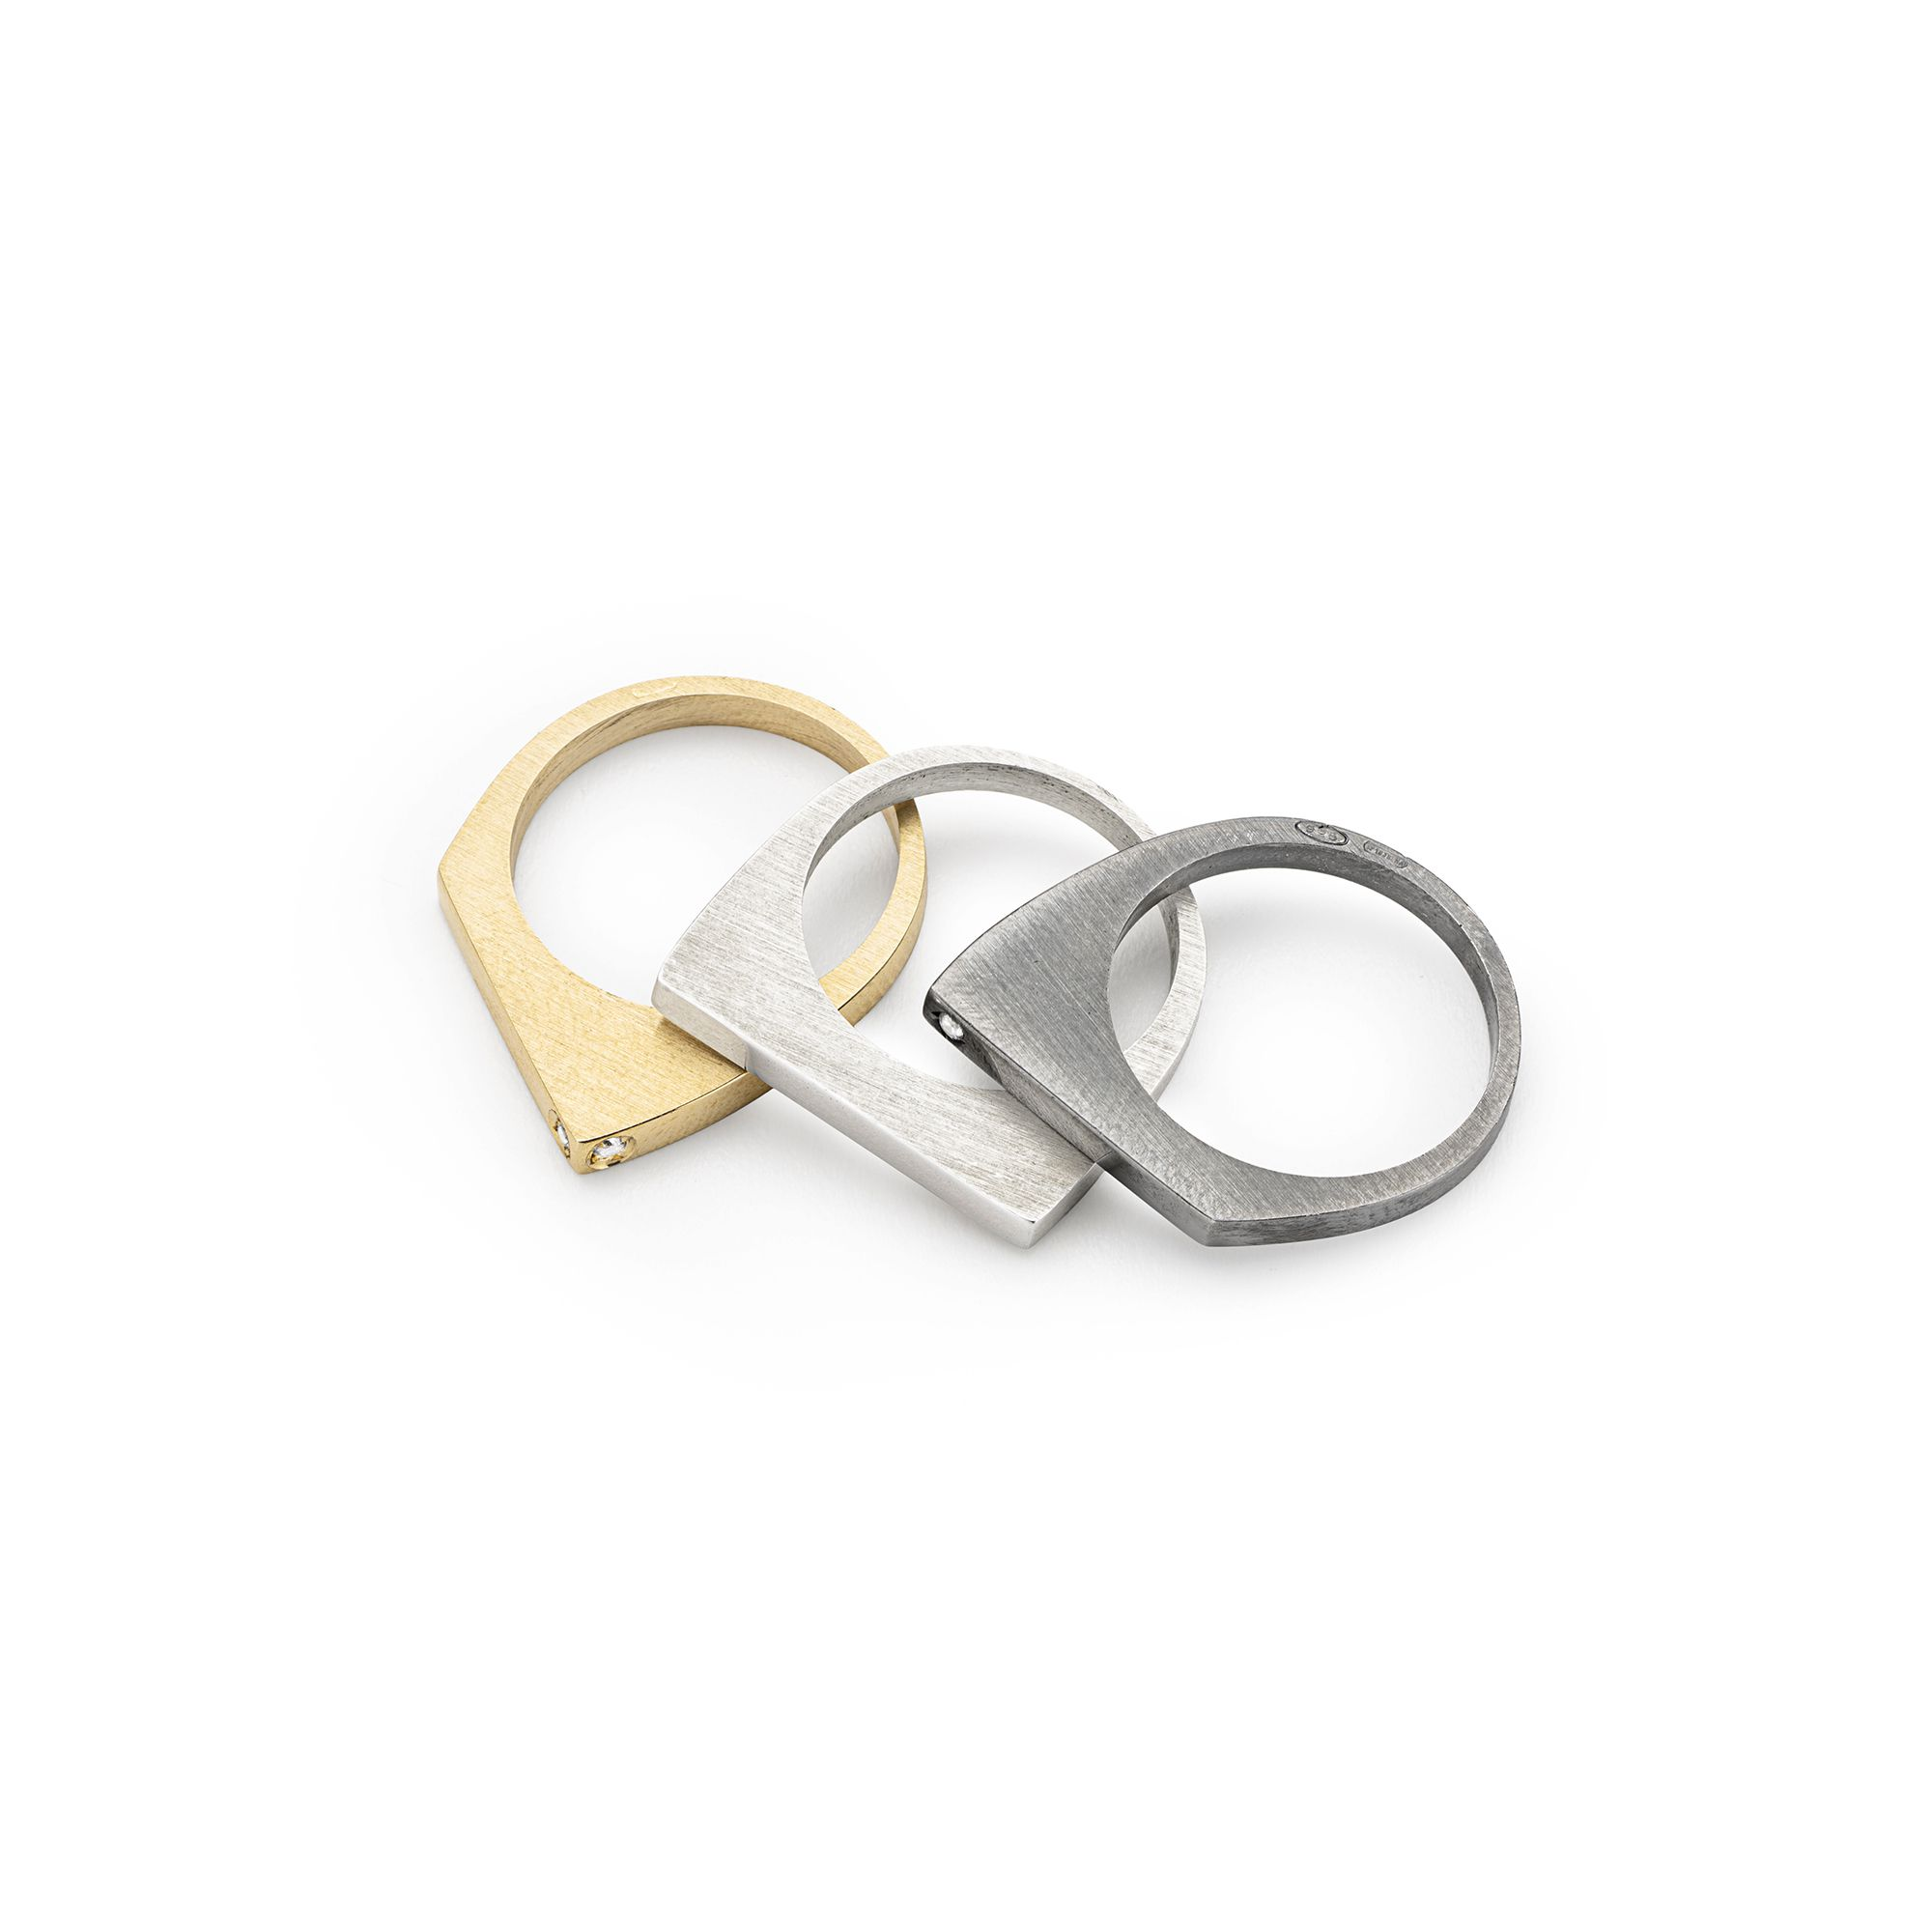 3 'congiunzioni' stackable rings Rings in silver, bronze and black silver